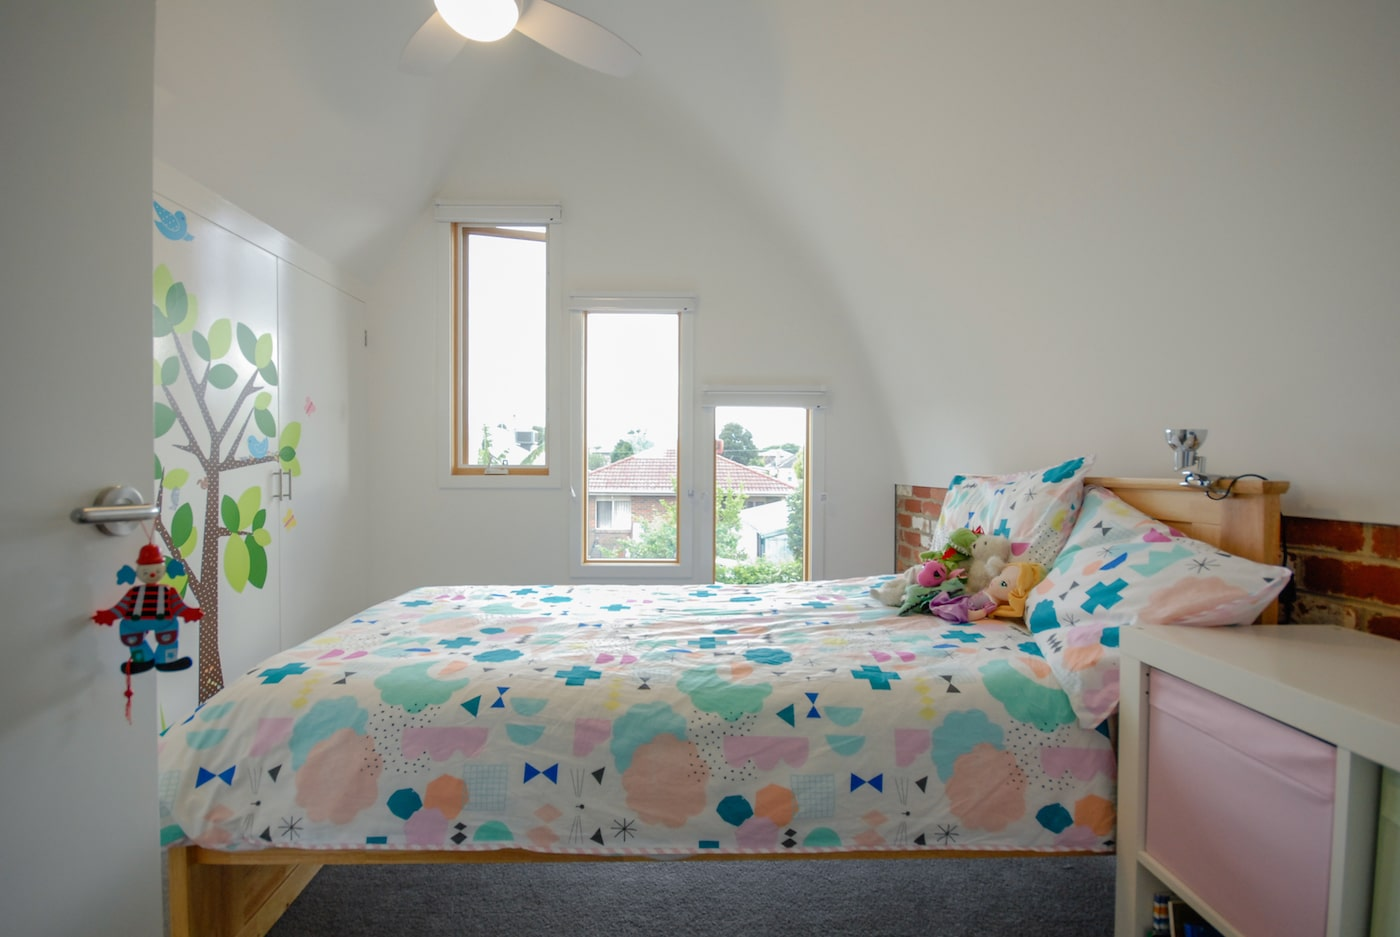 Childs bedroom with colourful doona cover